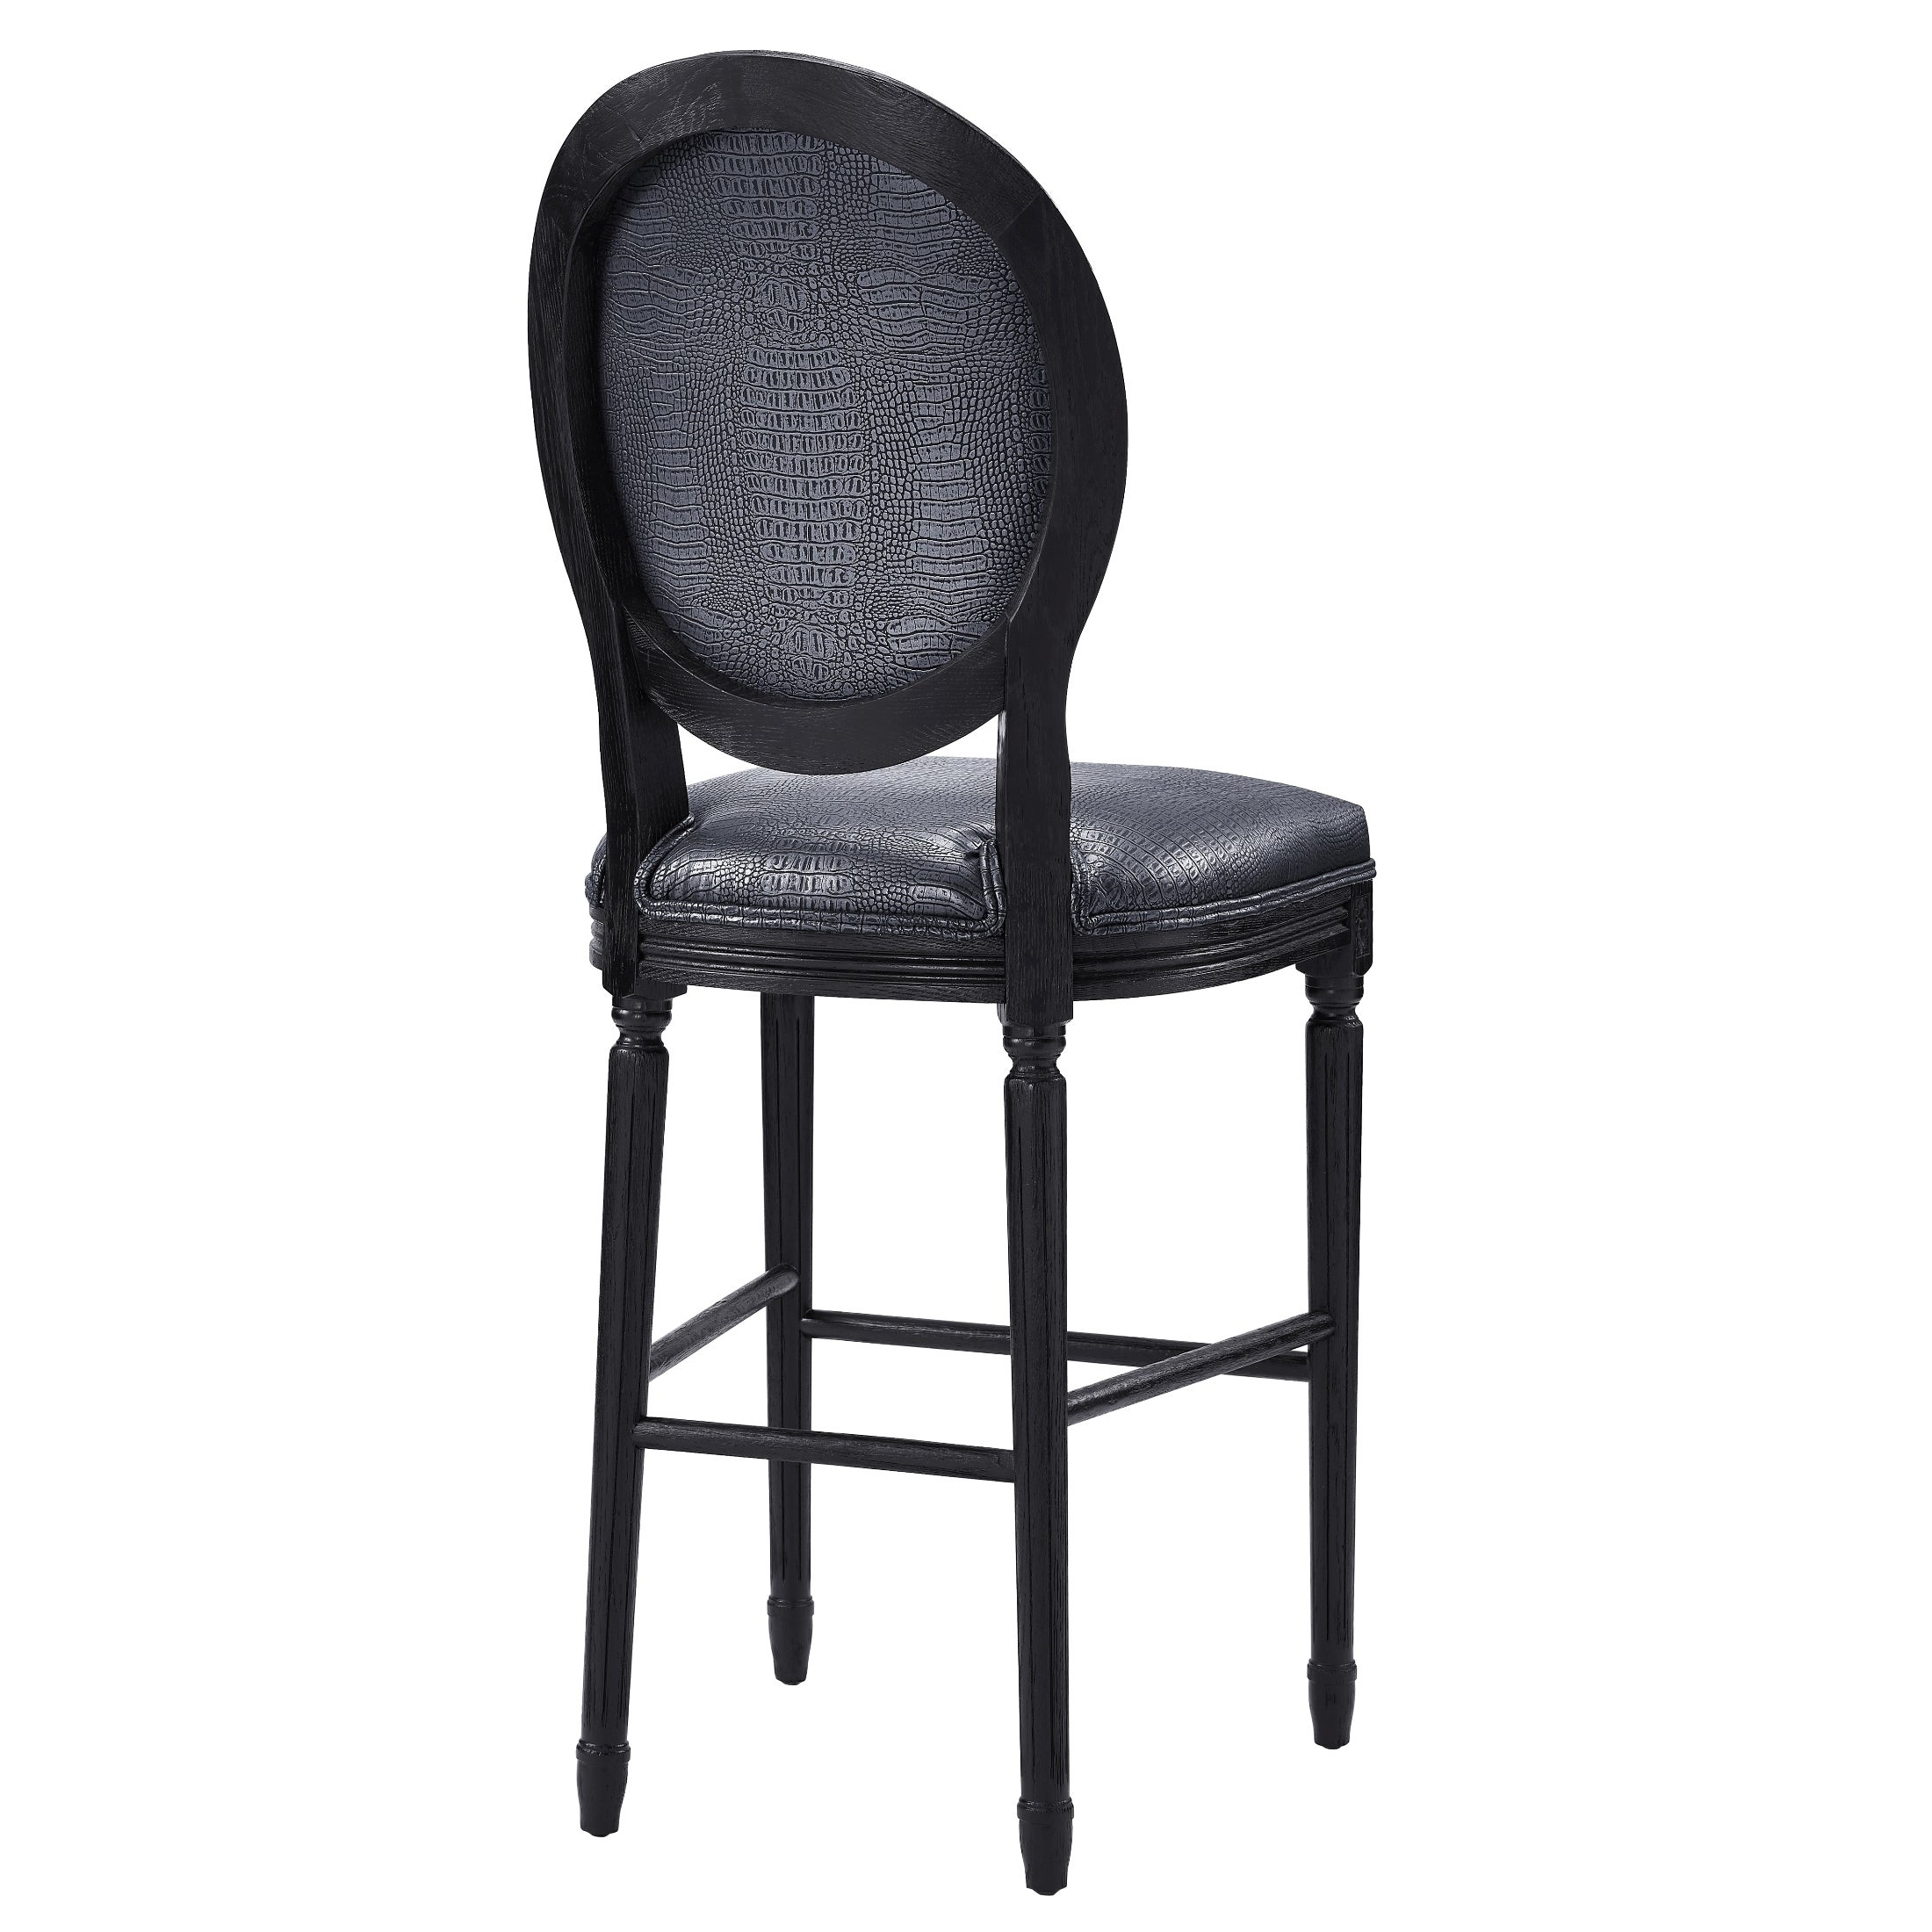 Philip Grey Croc Barstool   Free Shipping Today   Overstock.com   17444108 Photo